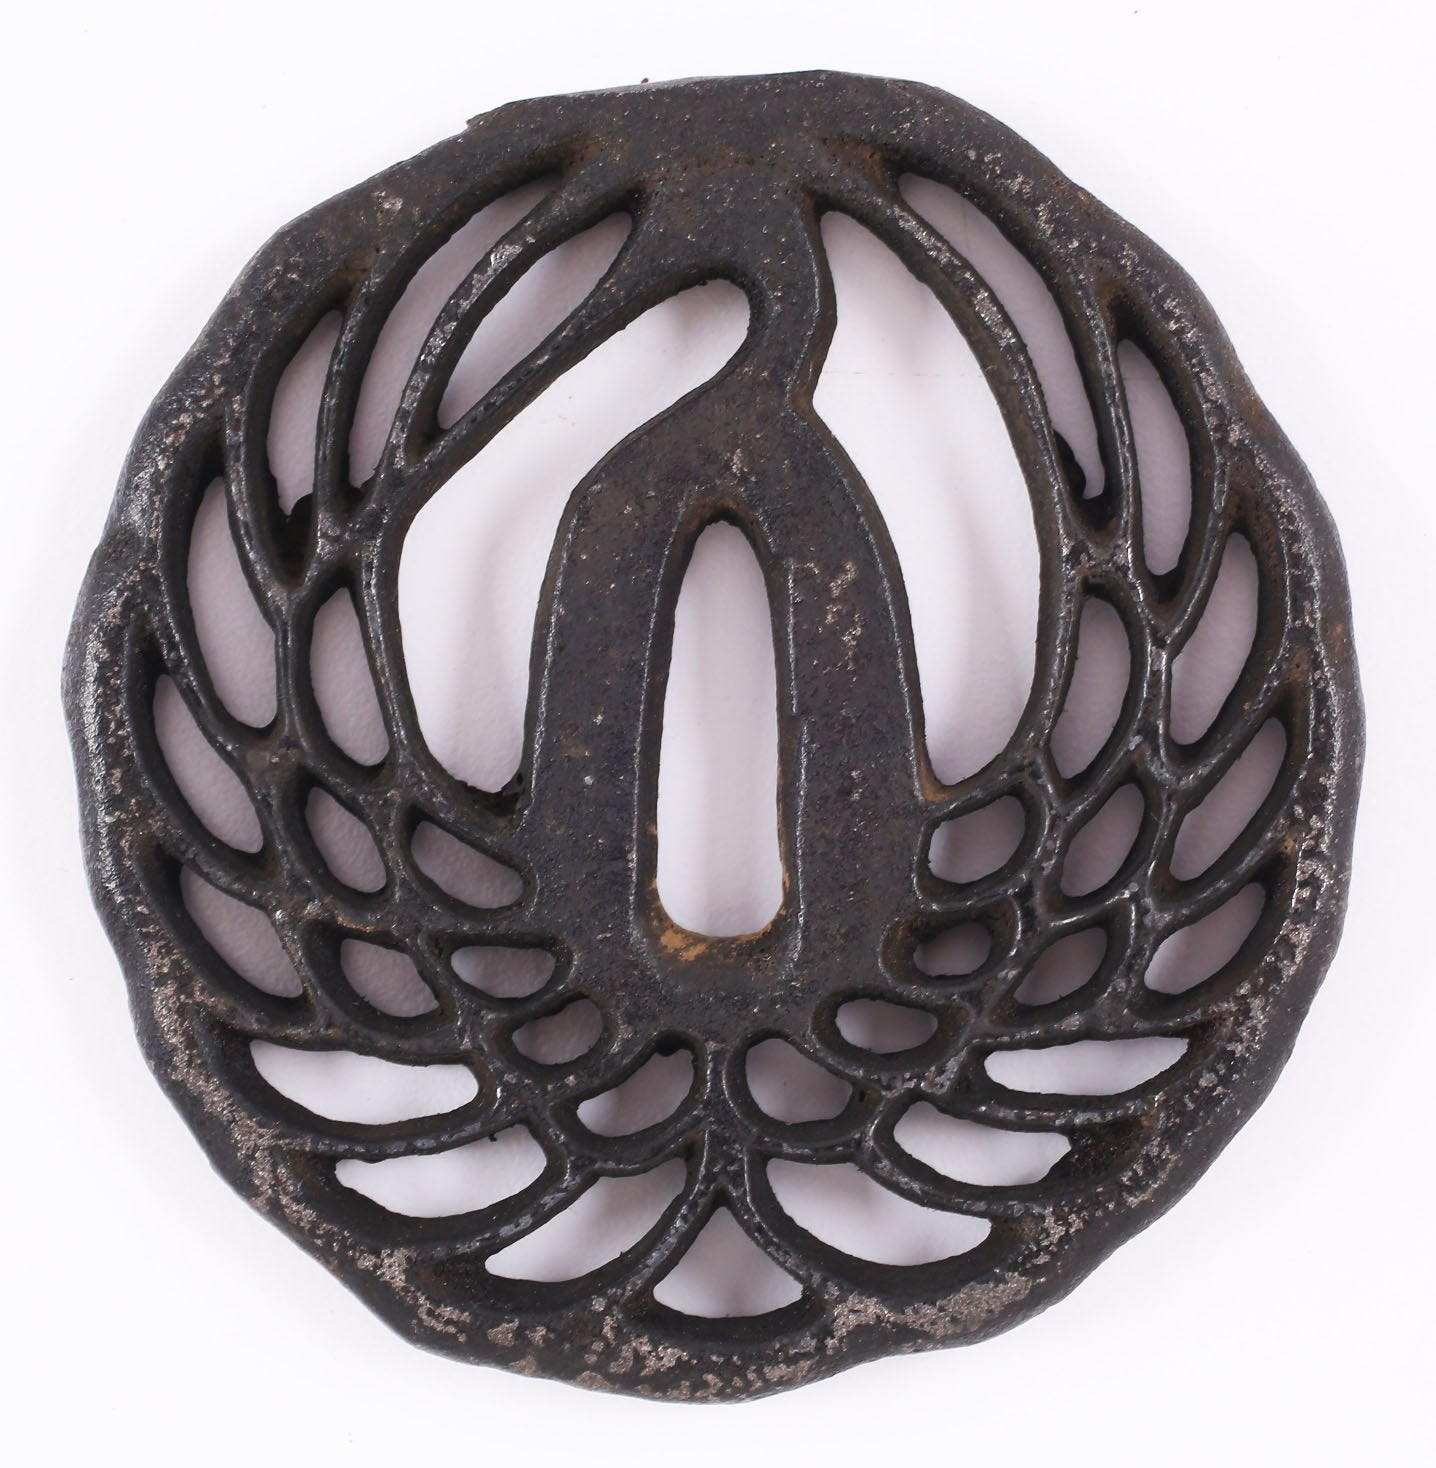 JAPANESE IRON SWORD GUARD TSUBA